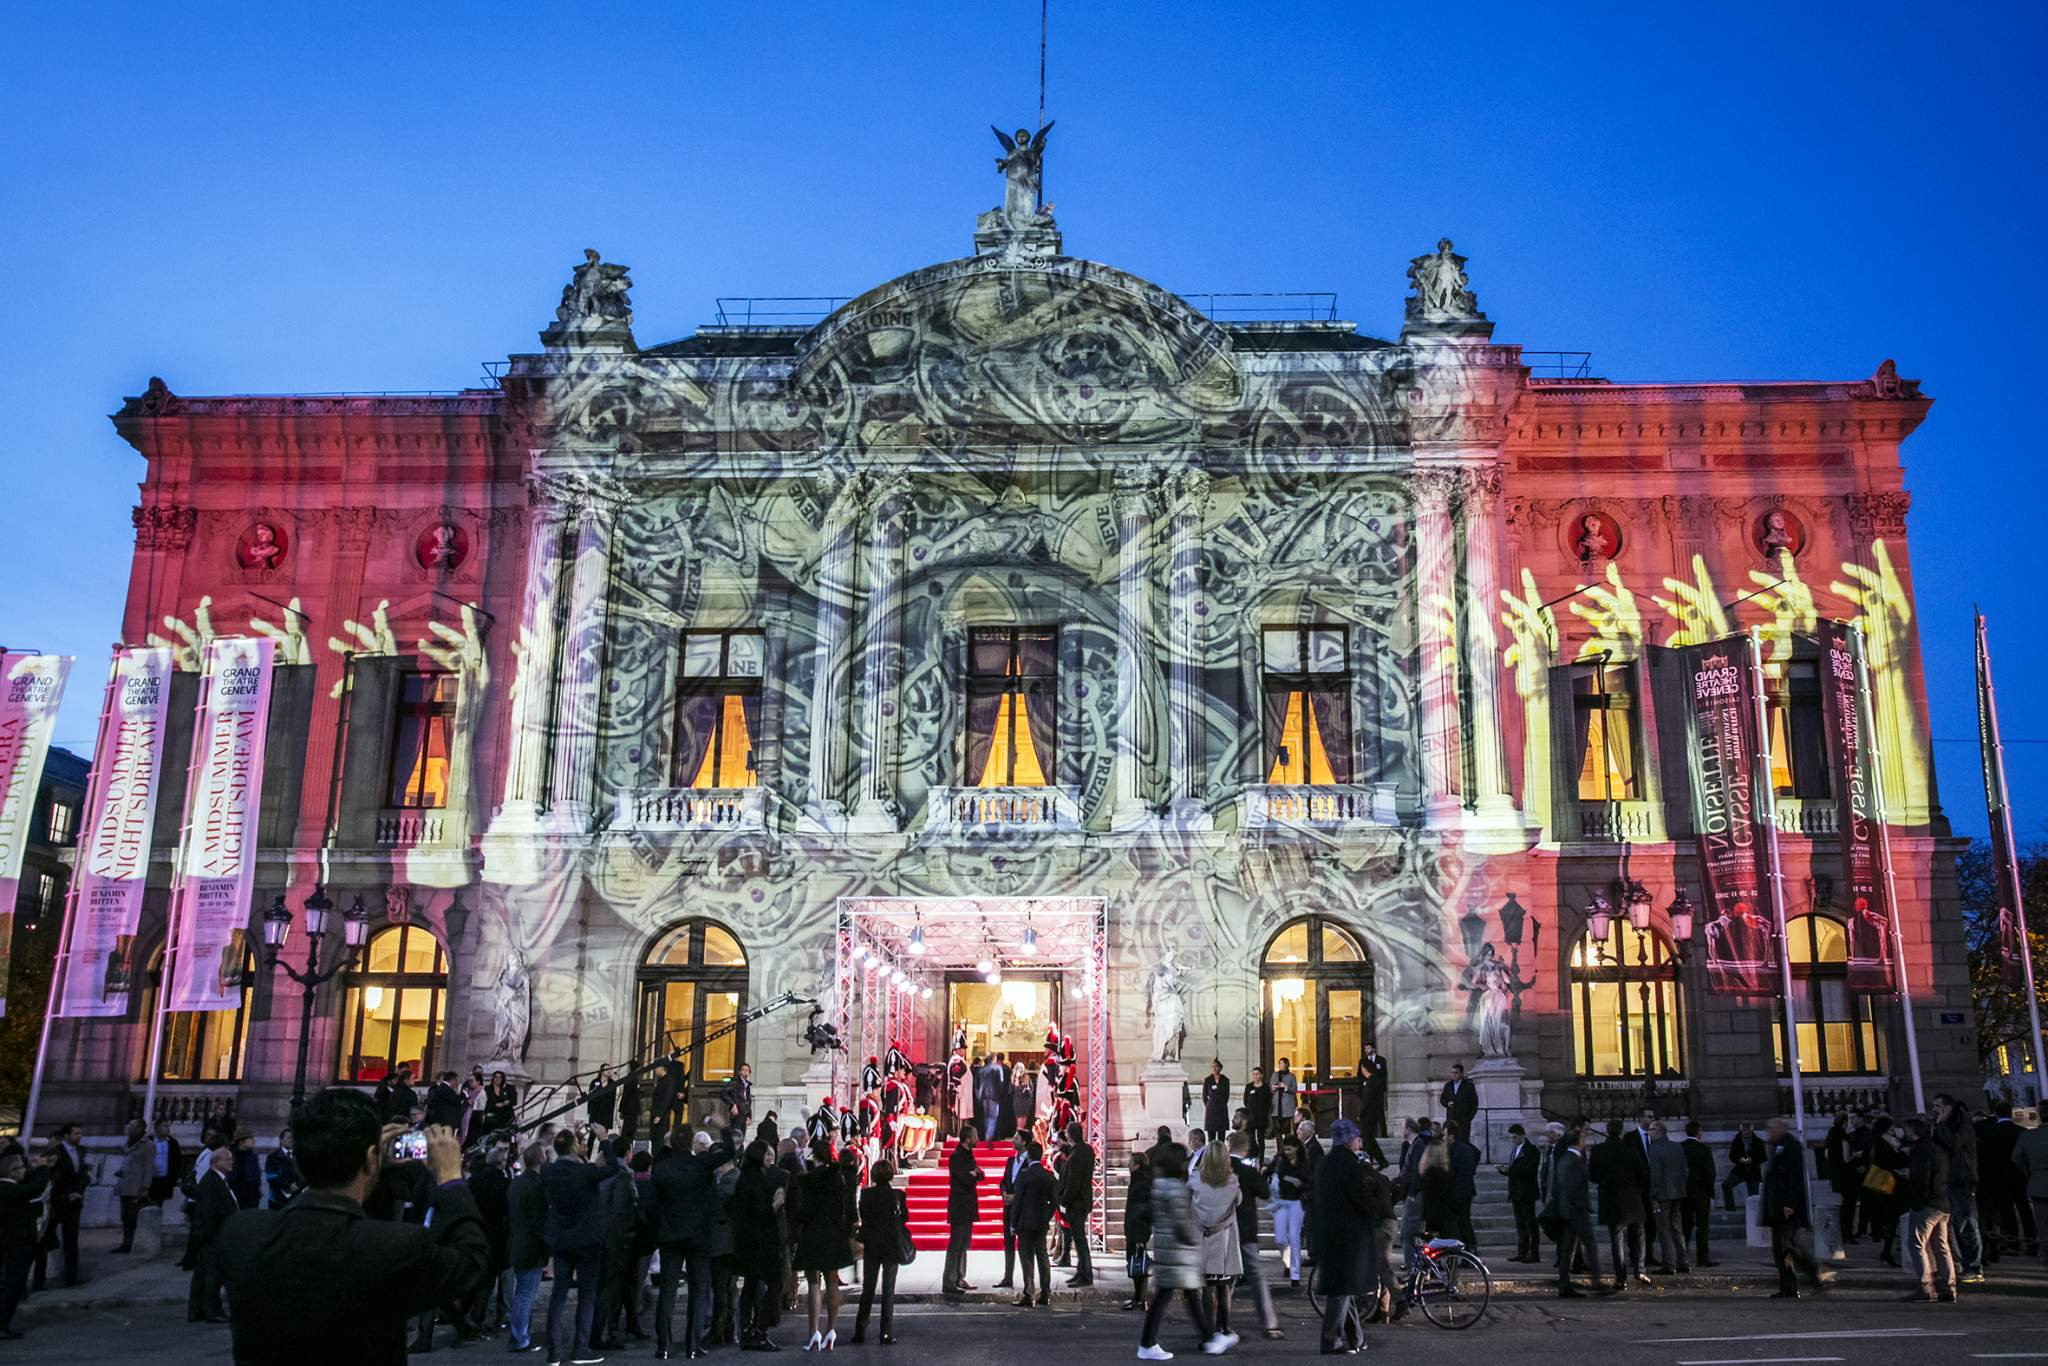 The Grand Théâtre de Genève lit up by Gerry Hofstetter at the ceremony of the GPHG 2015